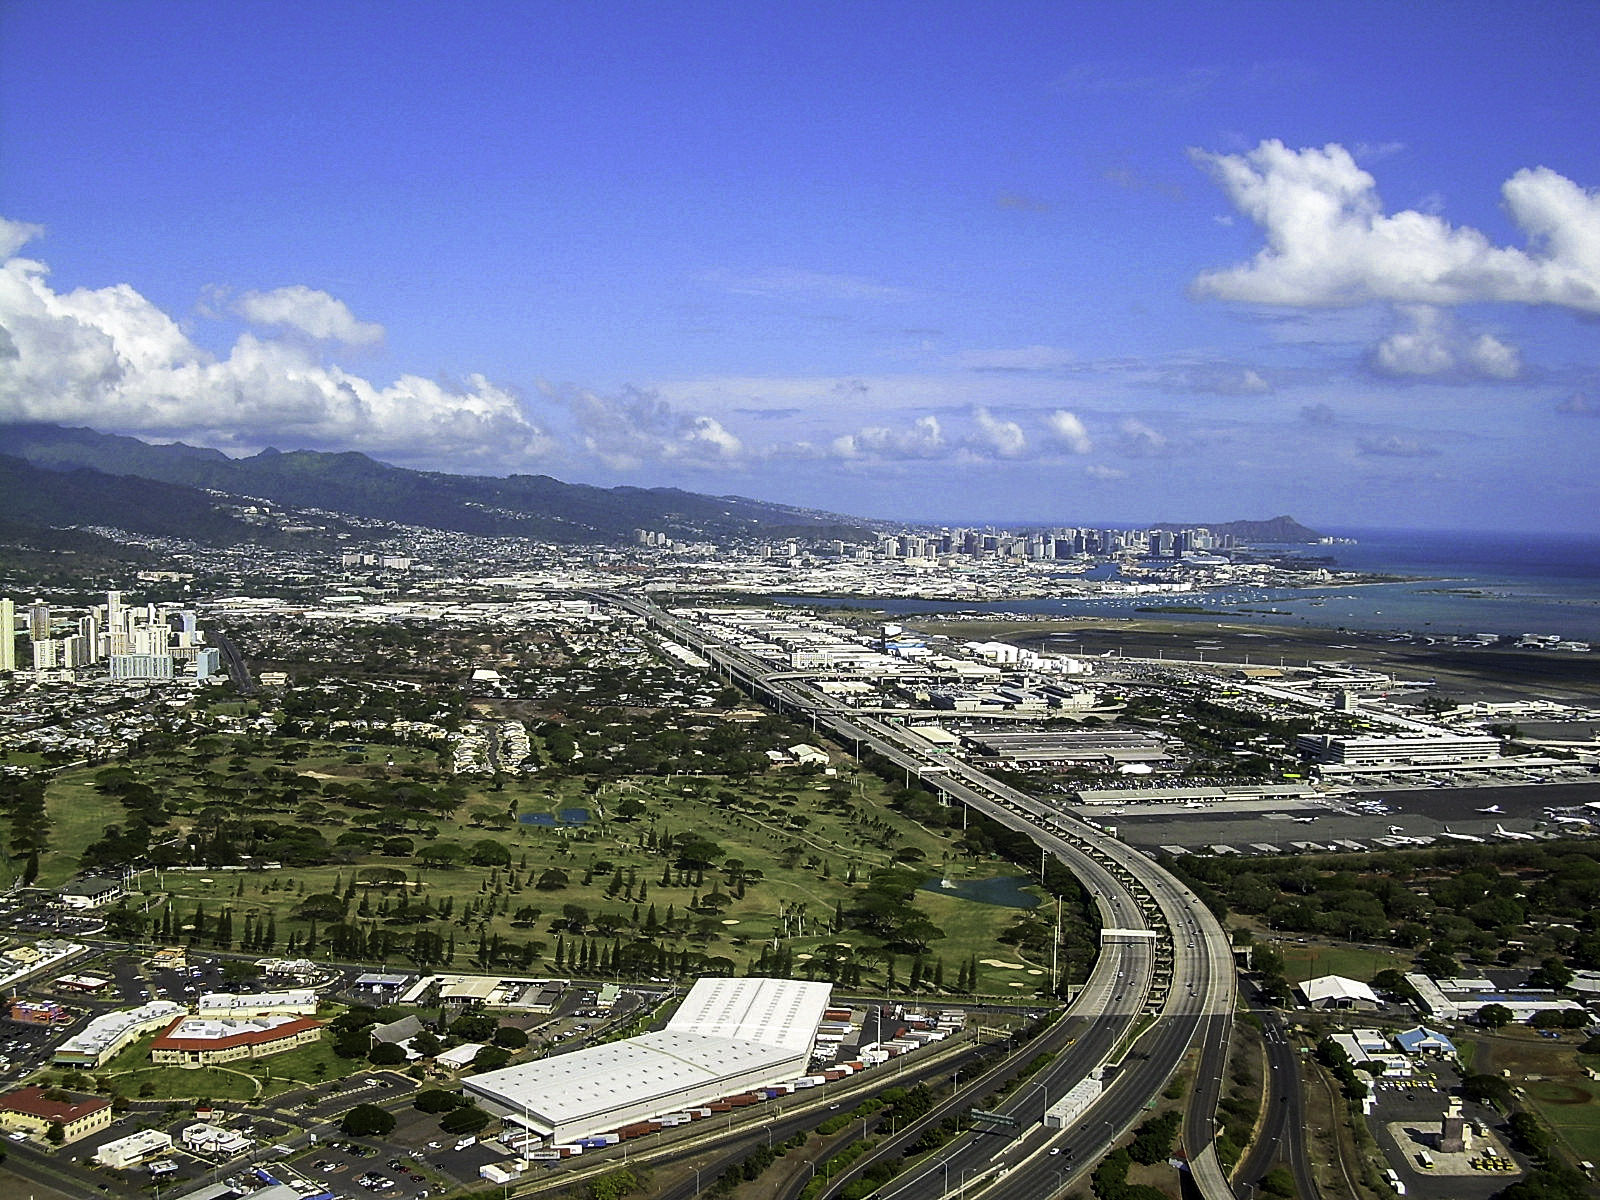 Costs of public employment in the Aloha State